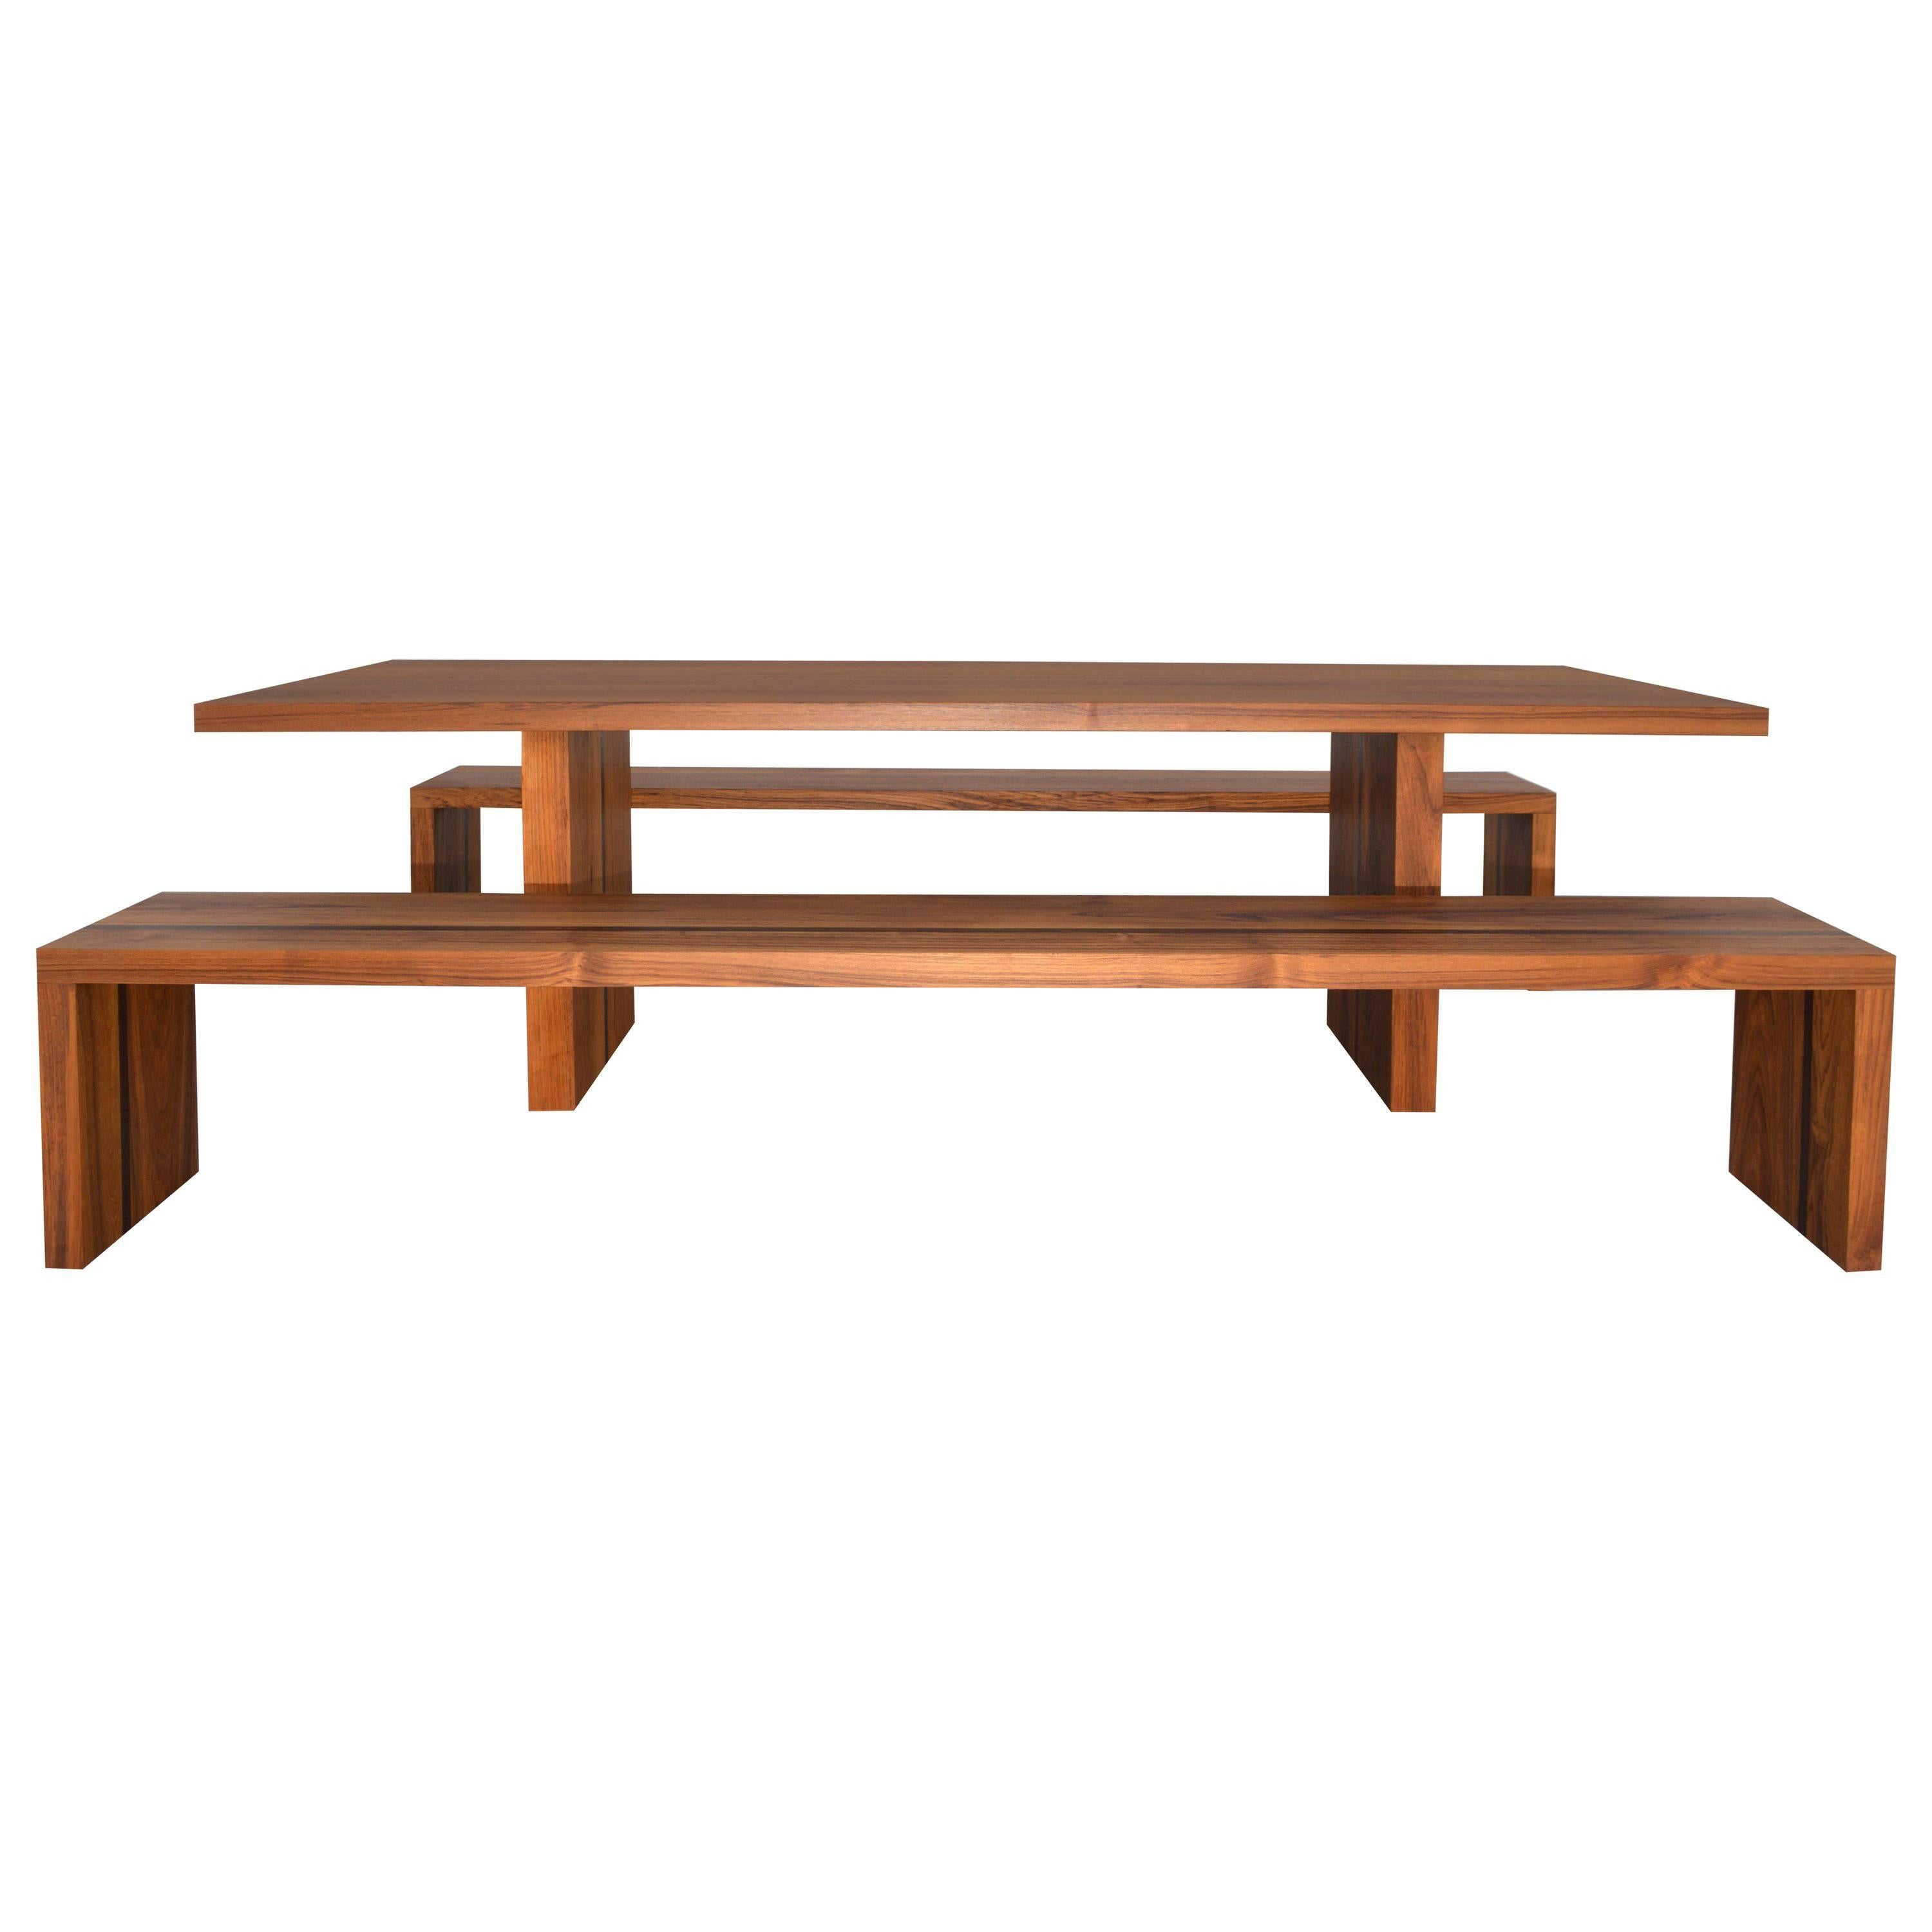 Outdoor Table And Benches In Teak And Wenge, Custom Made By Petersen  Antiques For Sale At 1stdibs